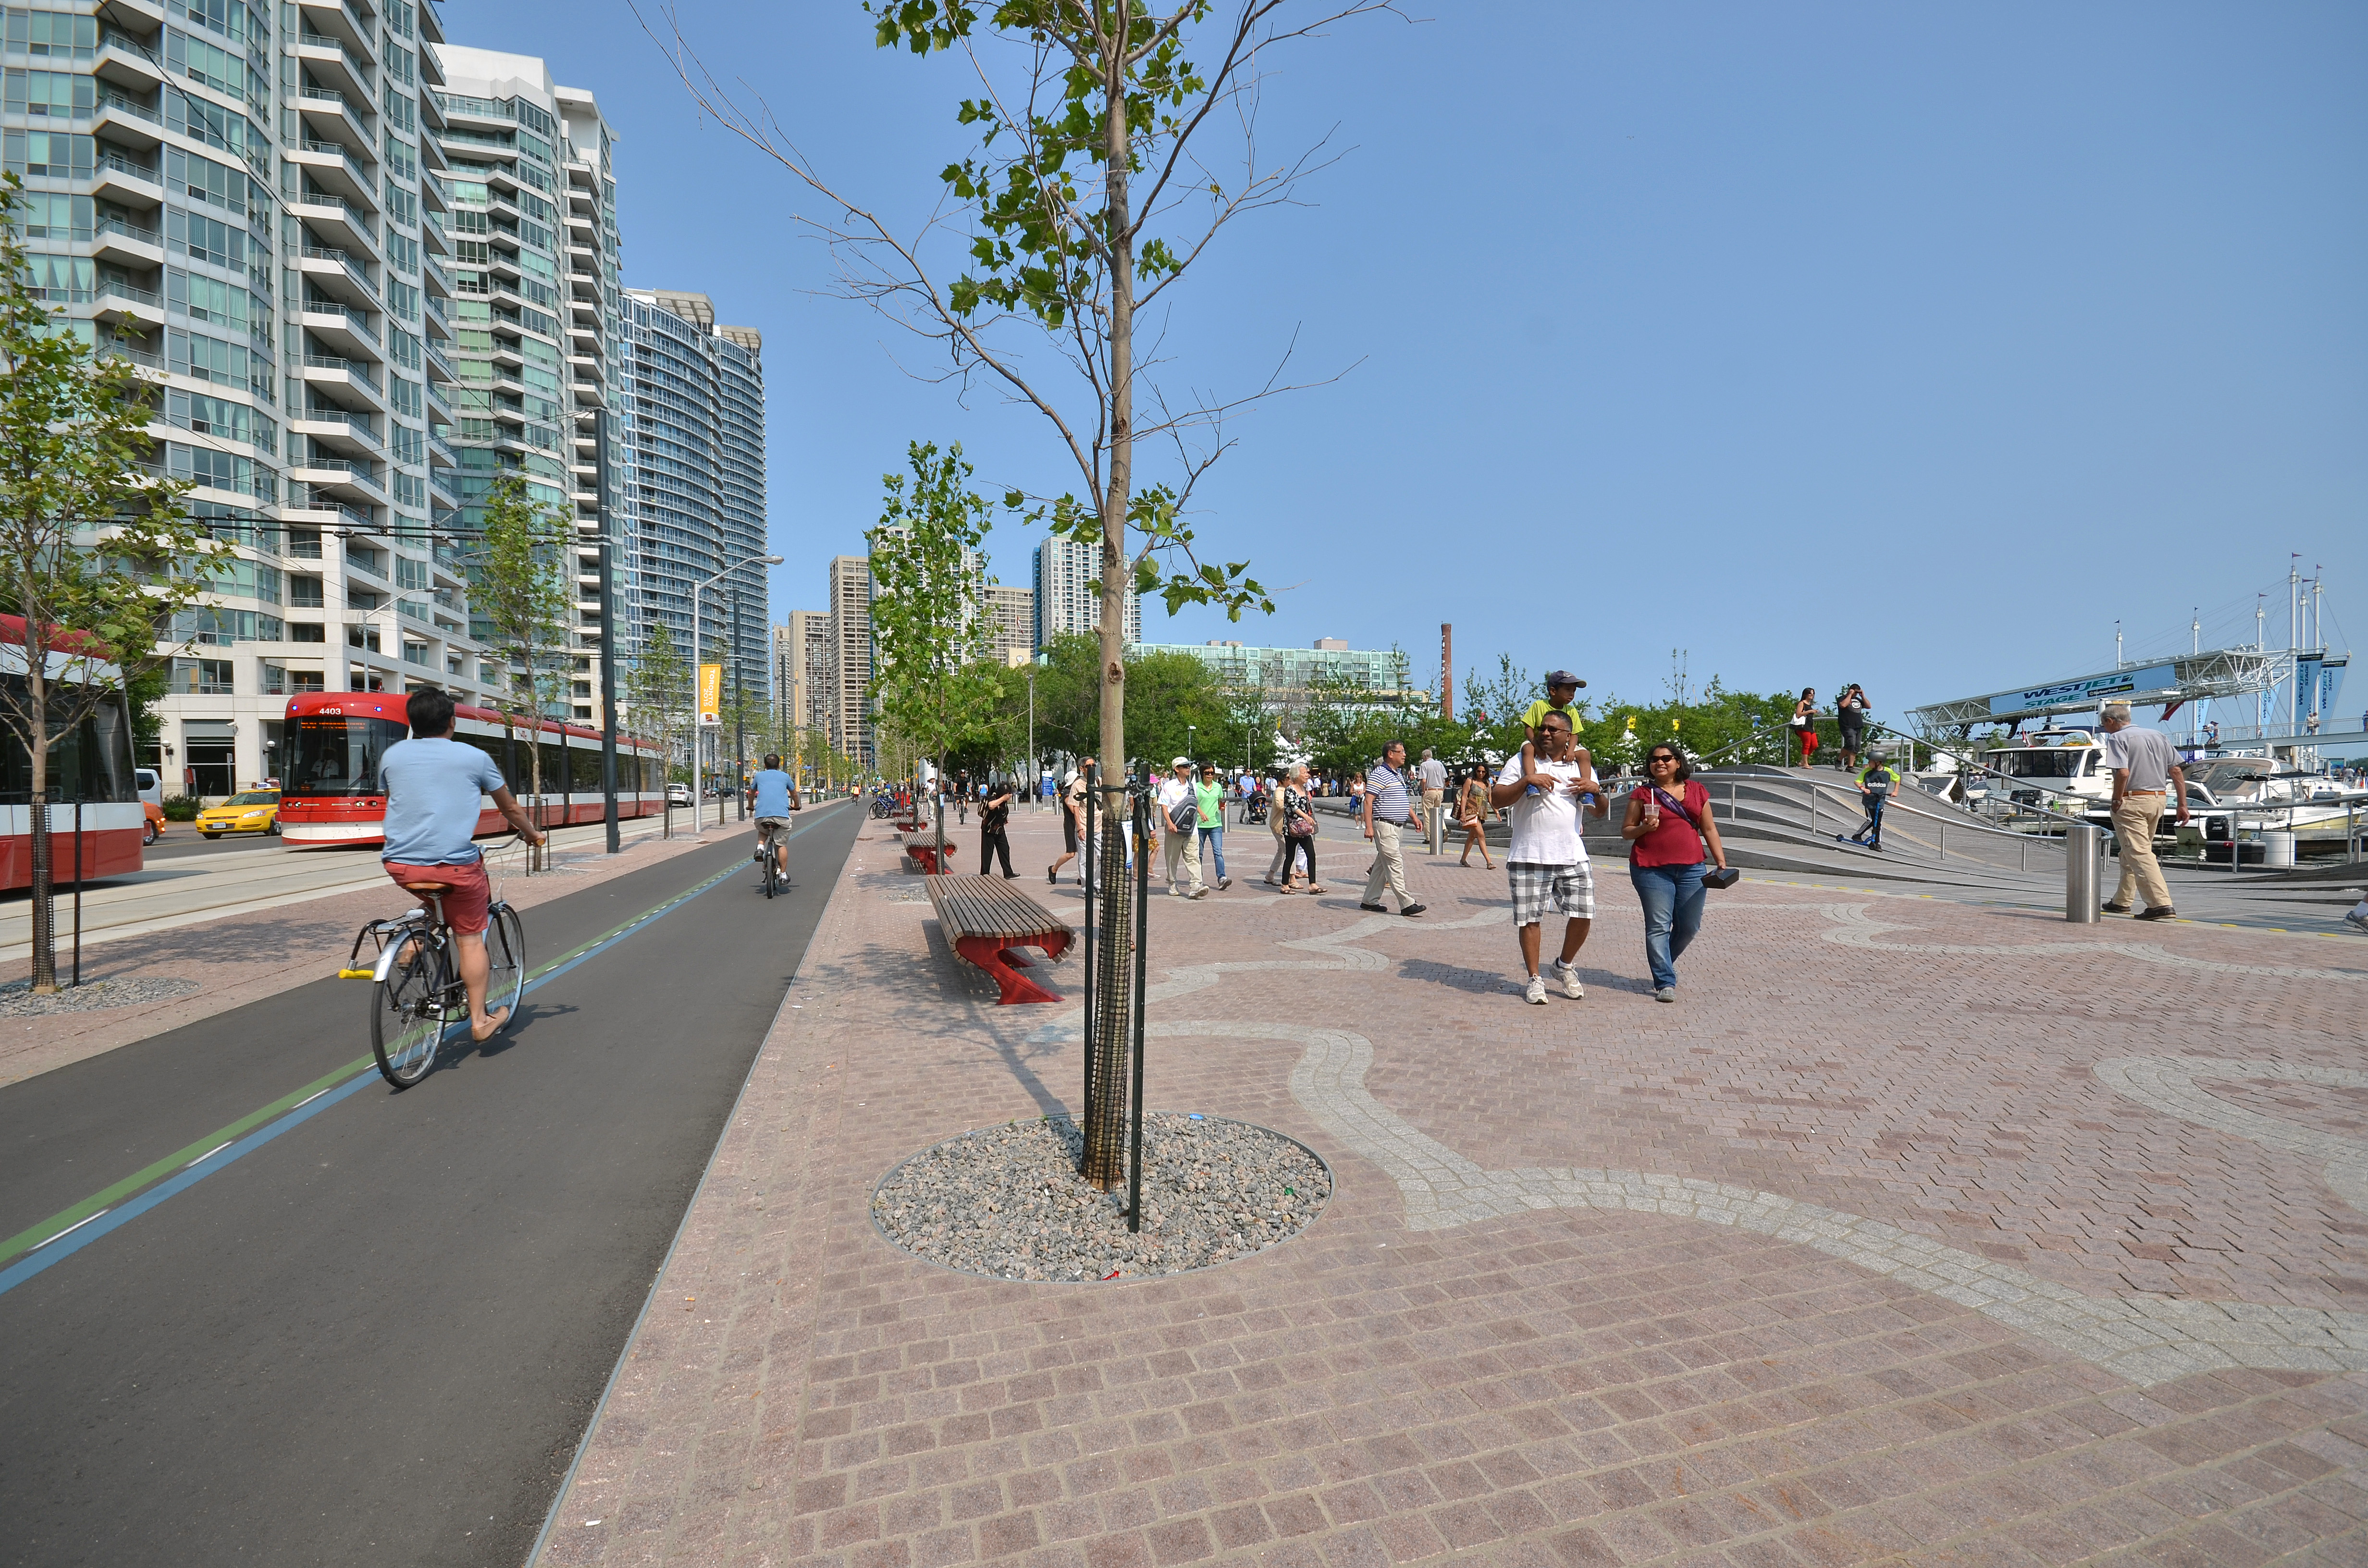 The redesigned Queens Quay, with the WaveDecks visible at right, is a vibrant contribution to Toronto's public realm. Photo: Nicola Betts